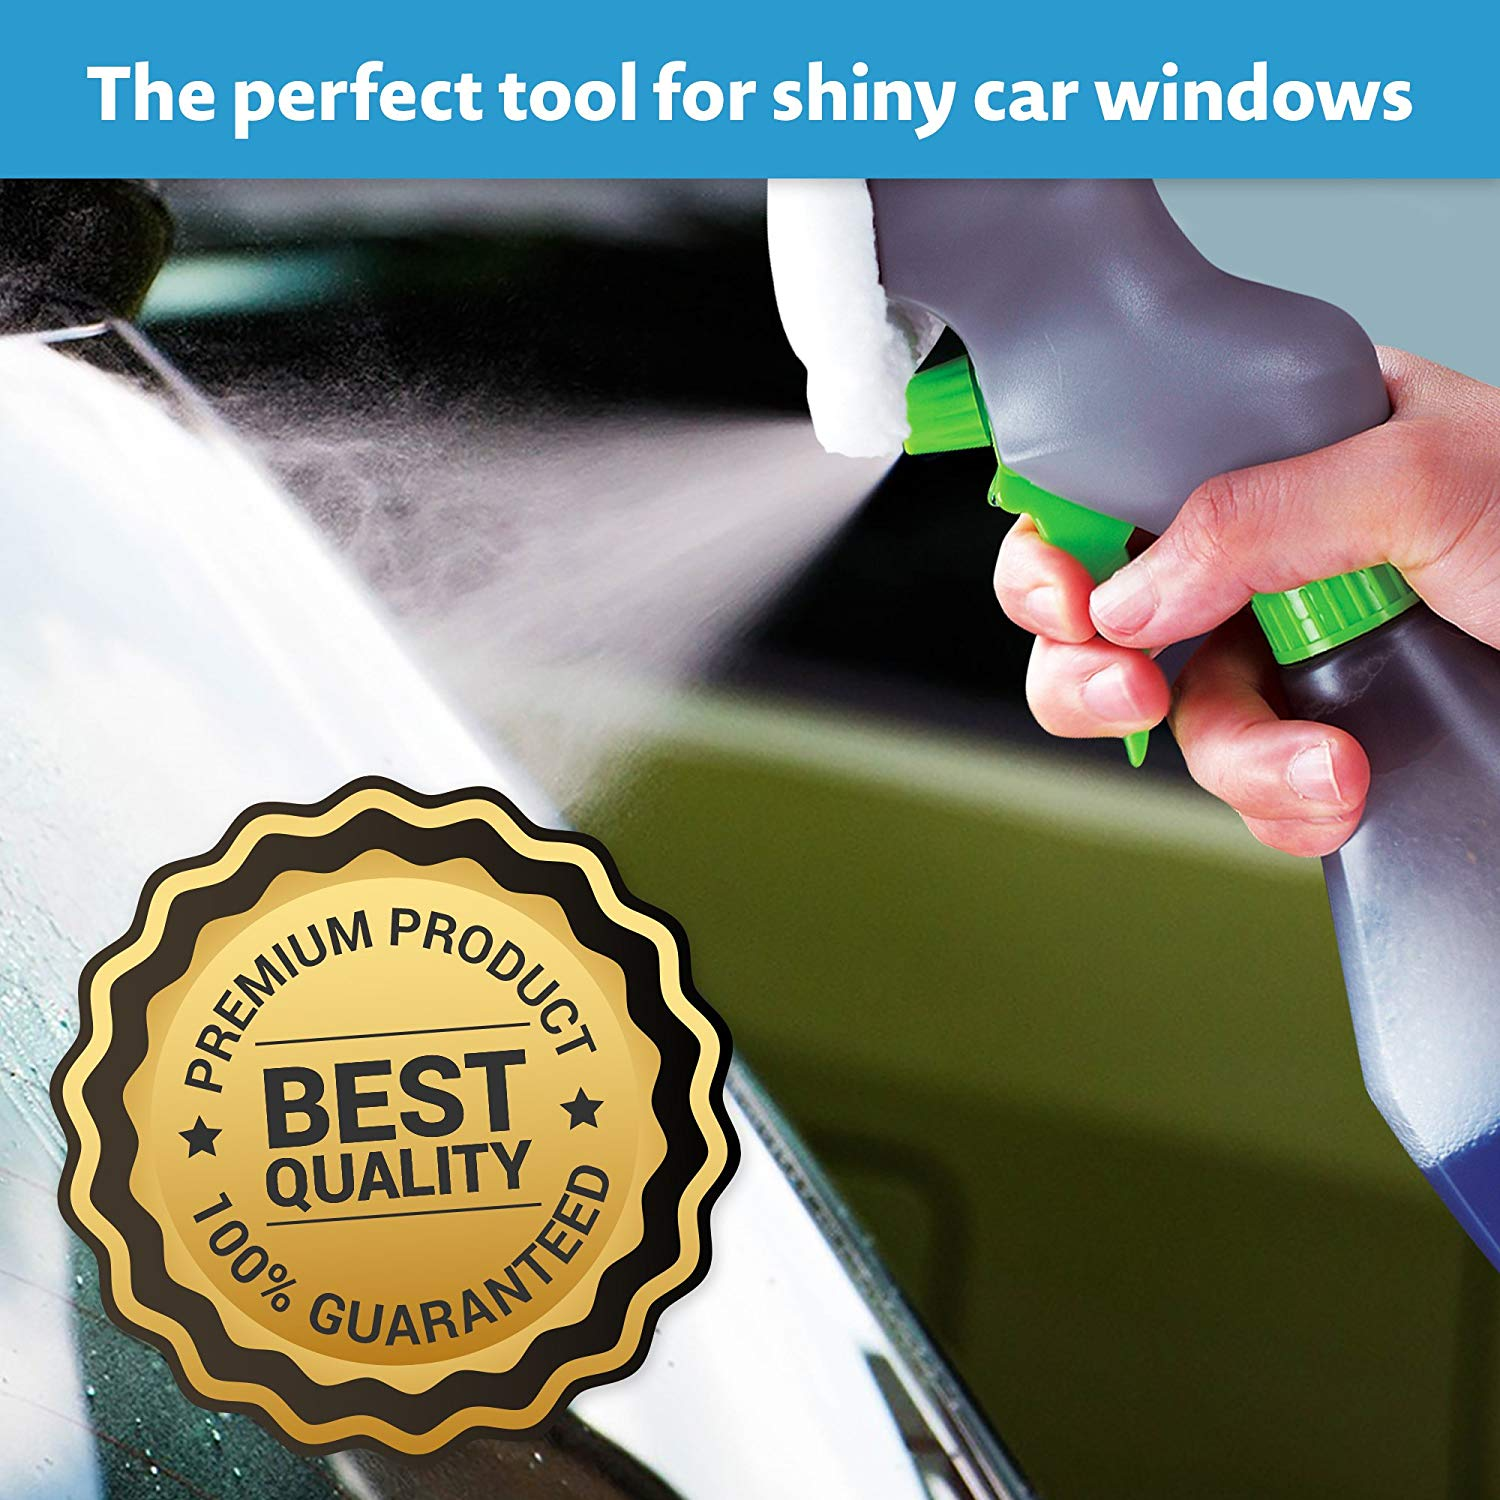 Magic Wiper Squeegee - 3 IN 1 WINDOW CLEANER